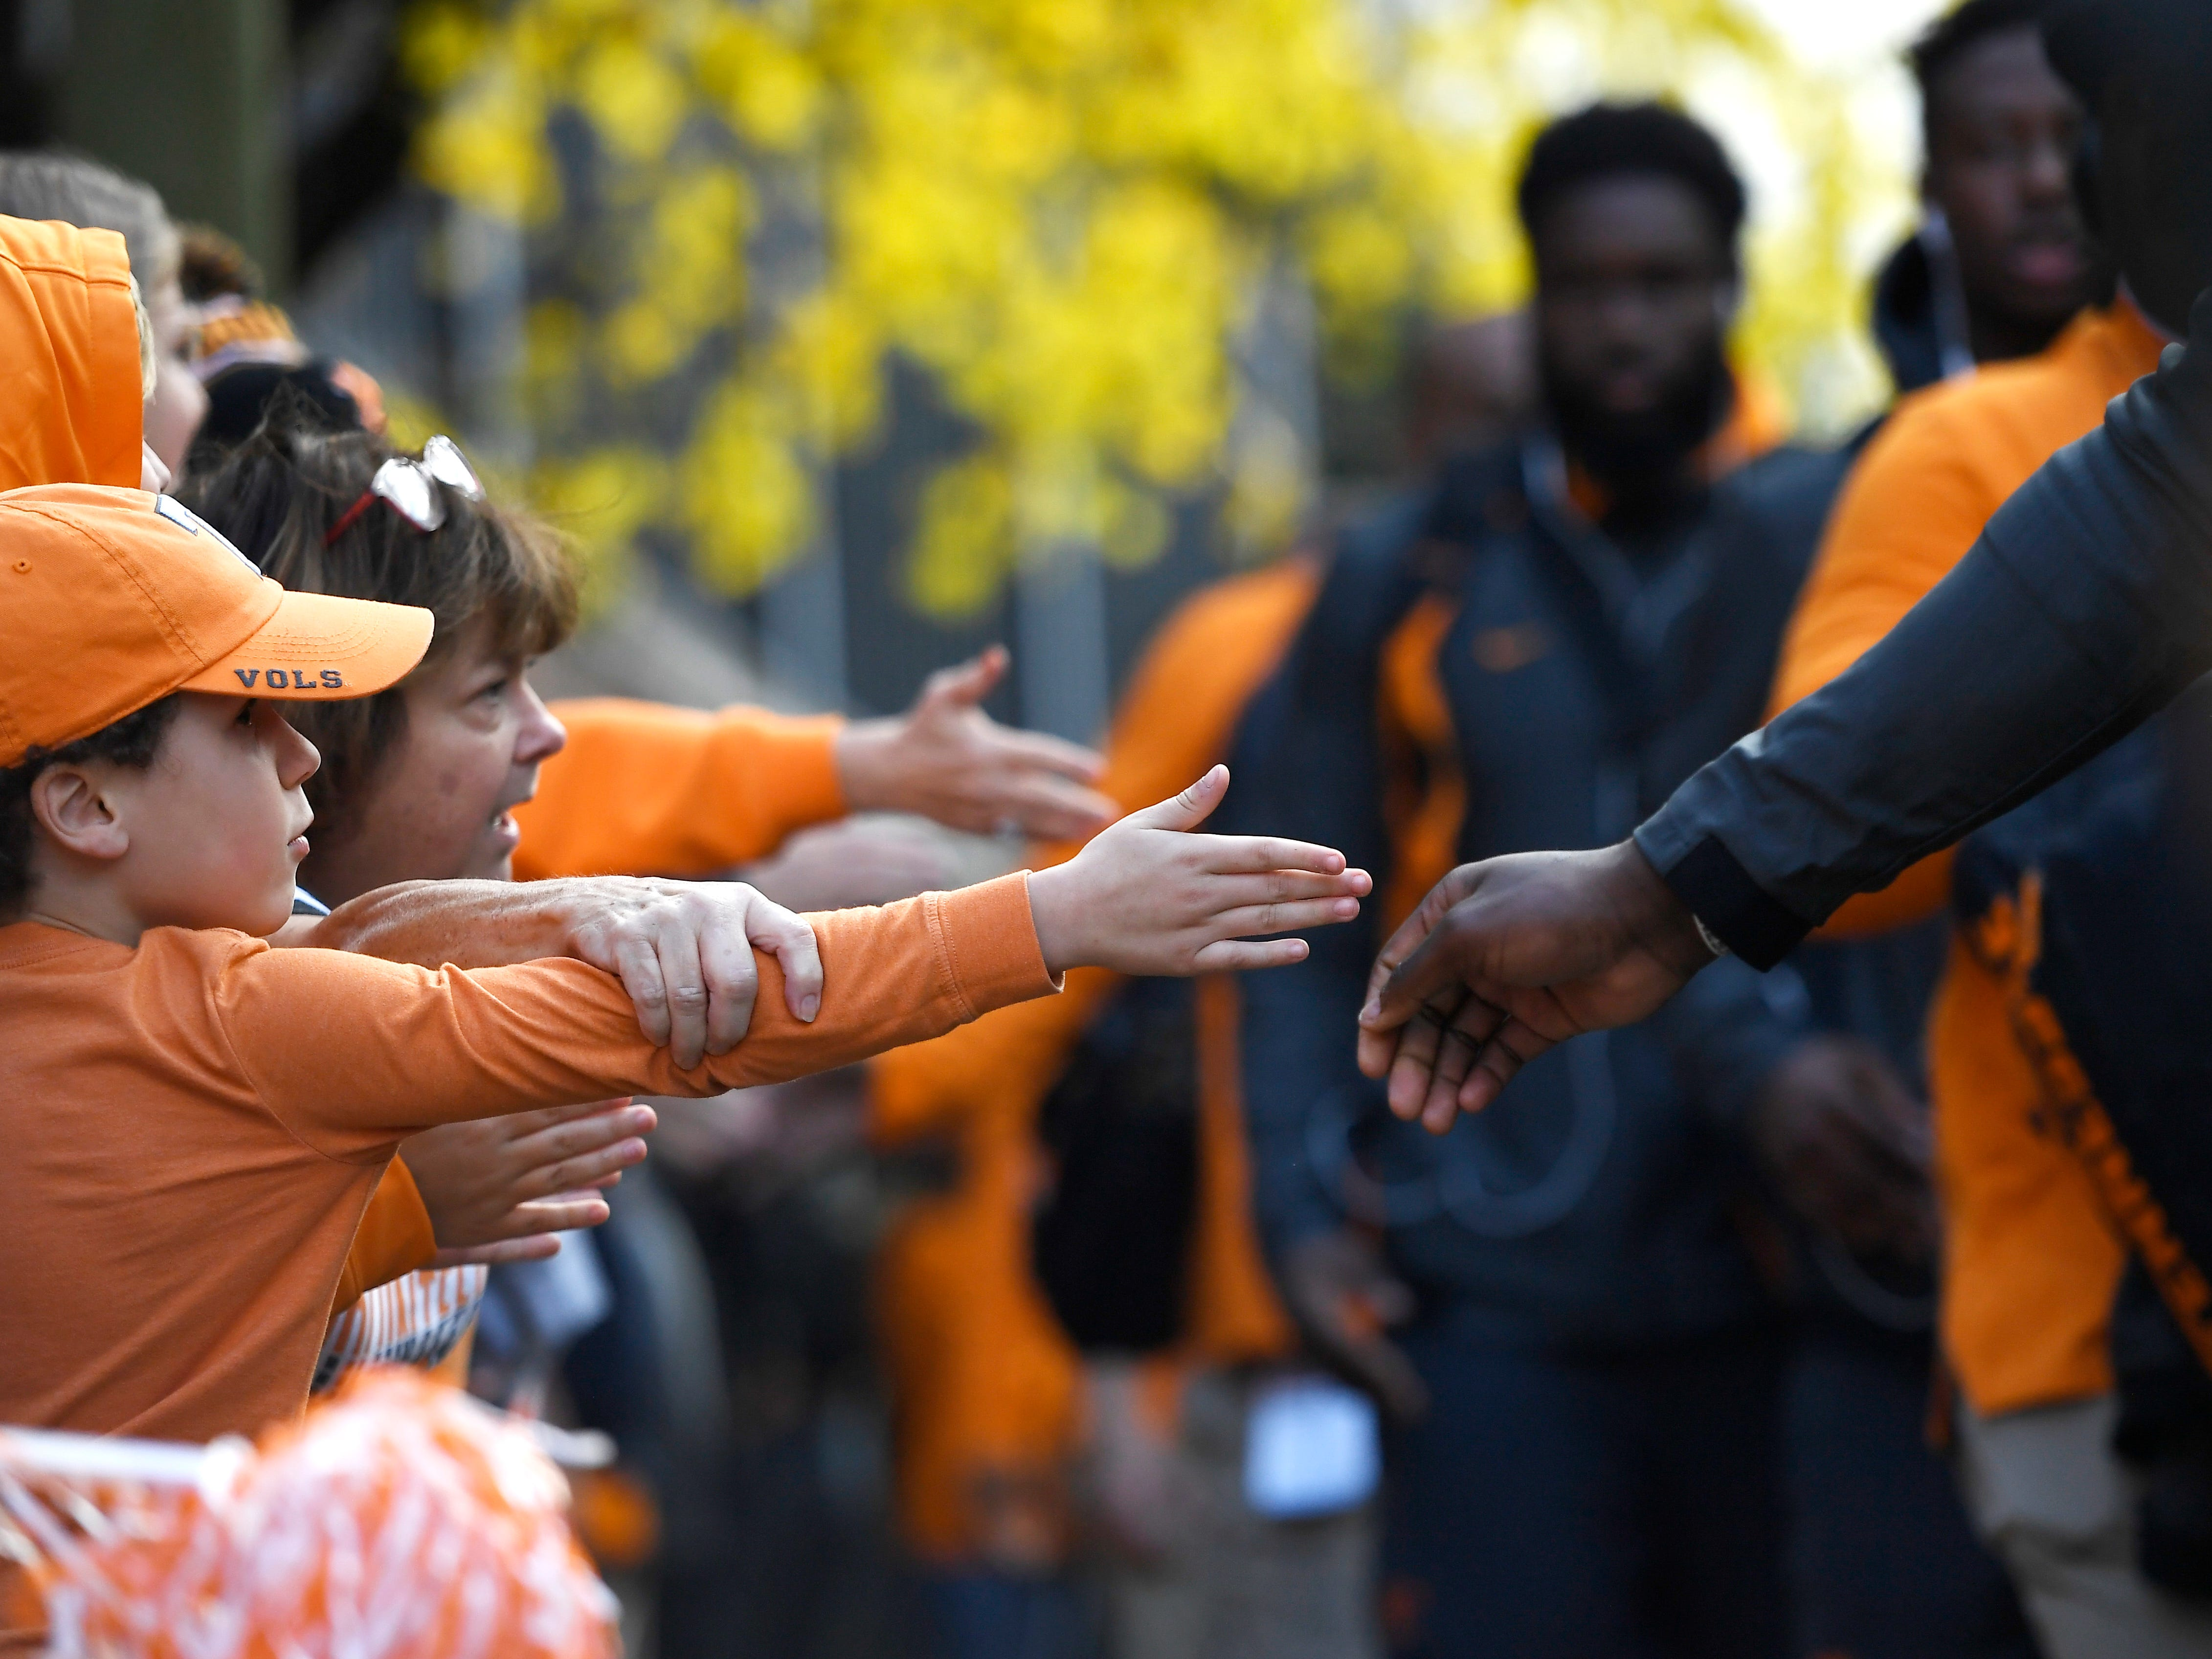 Tennessee fans slap hands with players as they arrive for the game at Vanderbilt Stadium Saturday, Nov. 24, 2018, in Nashville, Tenn.